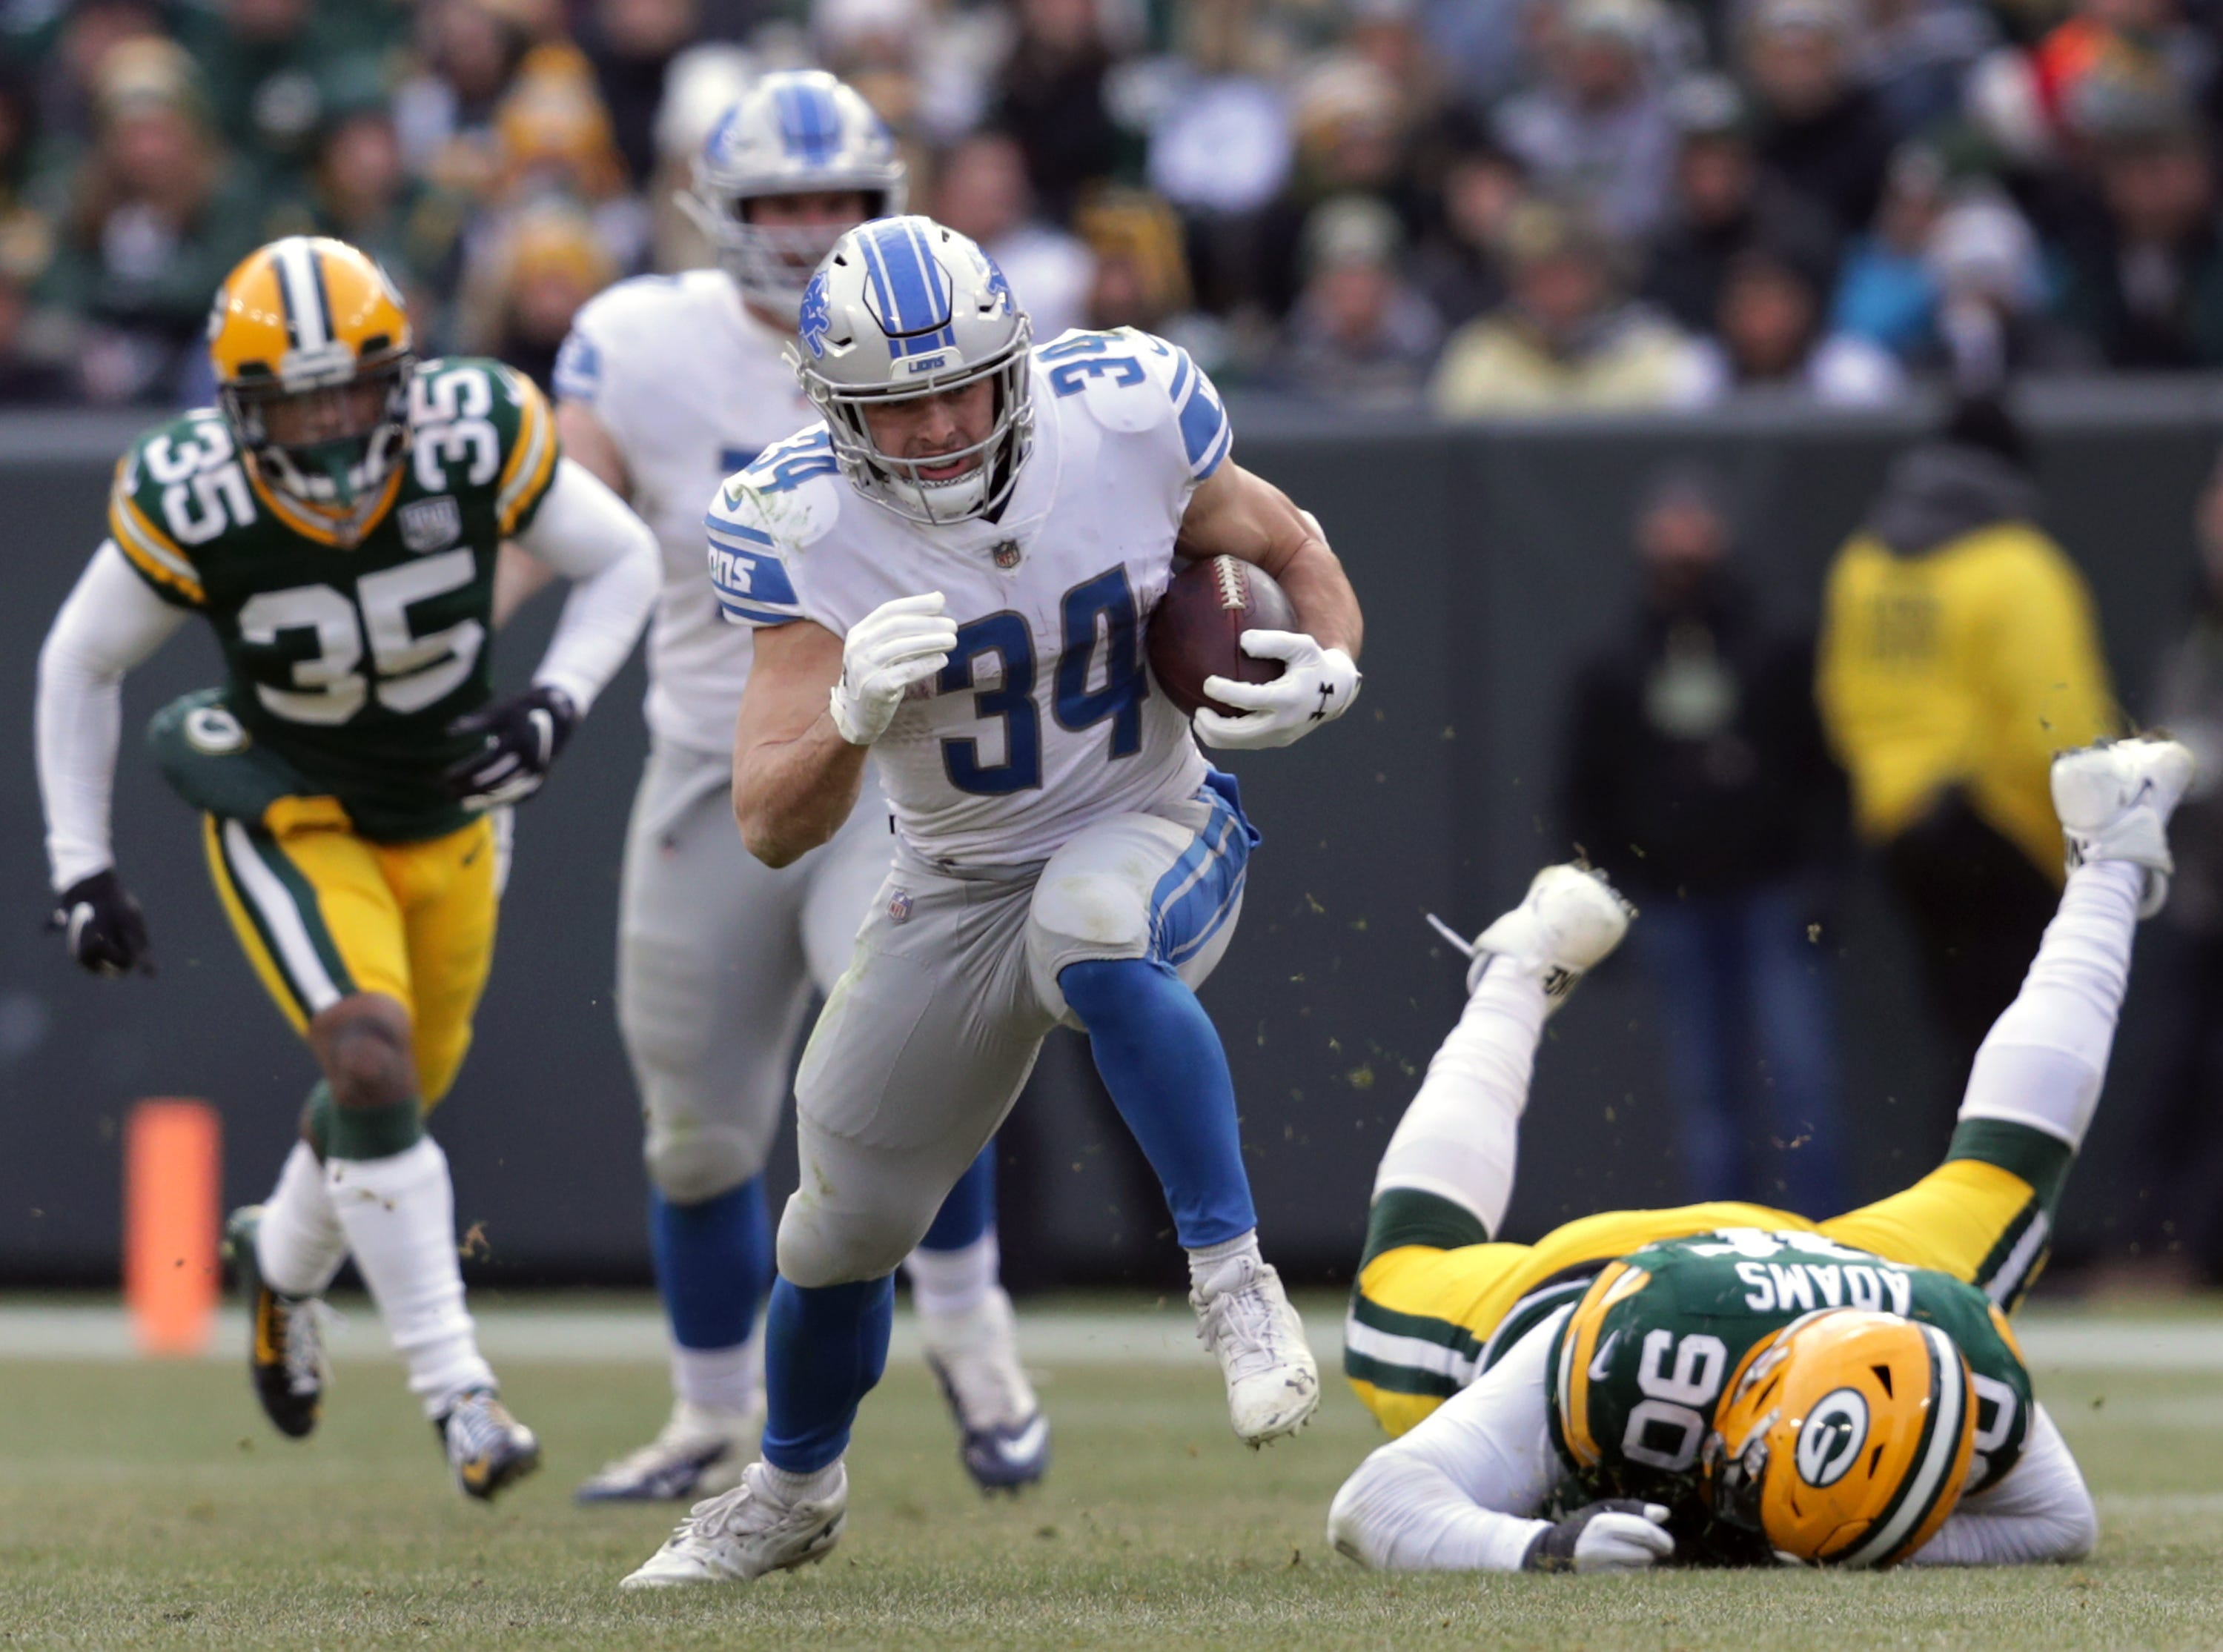 Detroit Lions running back Zach Zenner rushes against the Green Bay Packers during their football game on Sunday, December 30, 2018, at Lambeau Field in Green Bay, Wis. Detroit defeated Green Bay 31 to 0. Wm. Glasheen/USA TODAY NETWORK-Wisconsin.